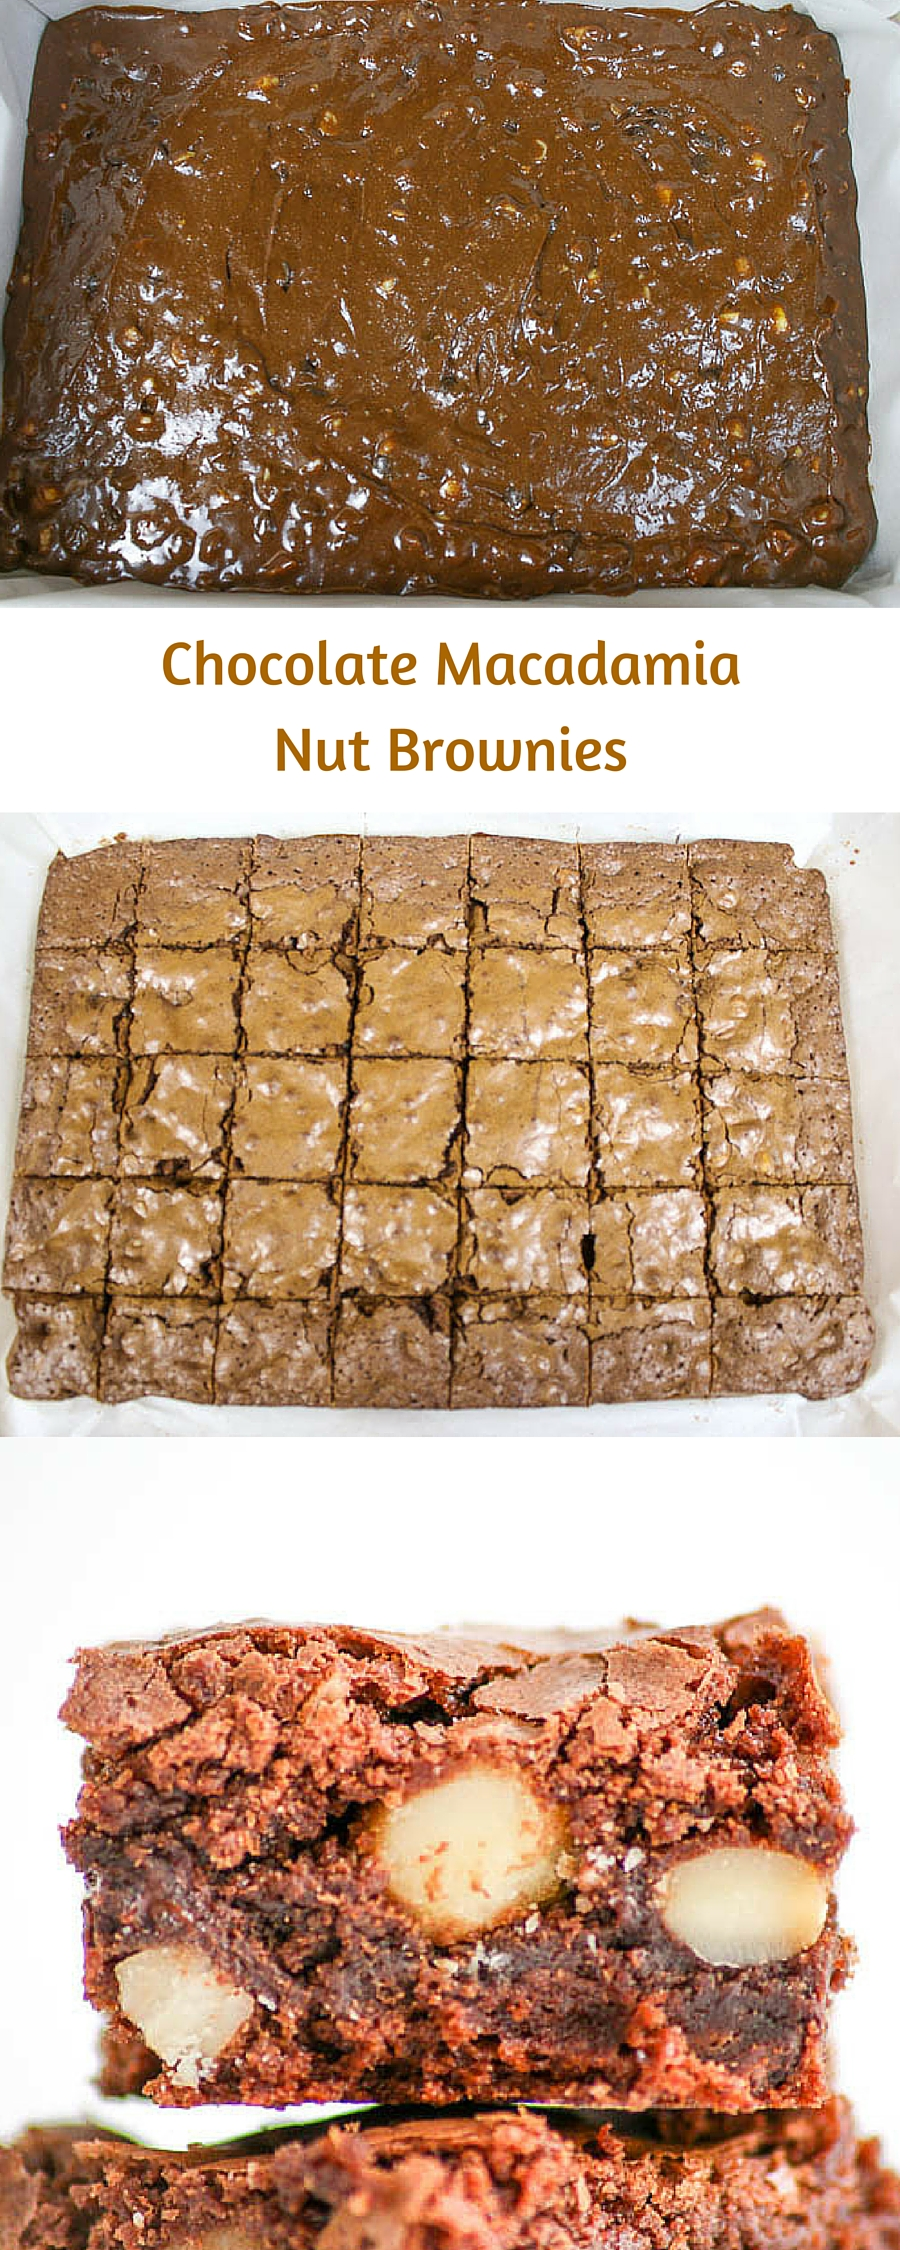 Chocolate Macadamia Nut Brownies are irresistable. The flavor is intensified by toasting the nuts before adding them into the batter. An easy recipe, too!